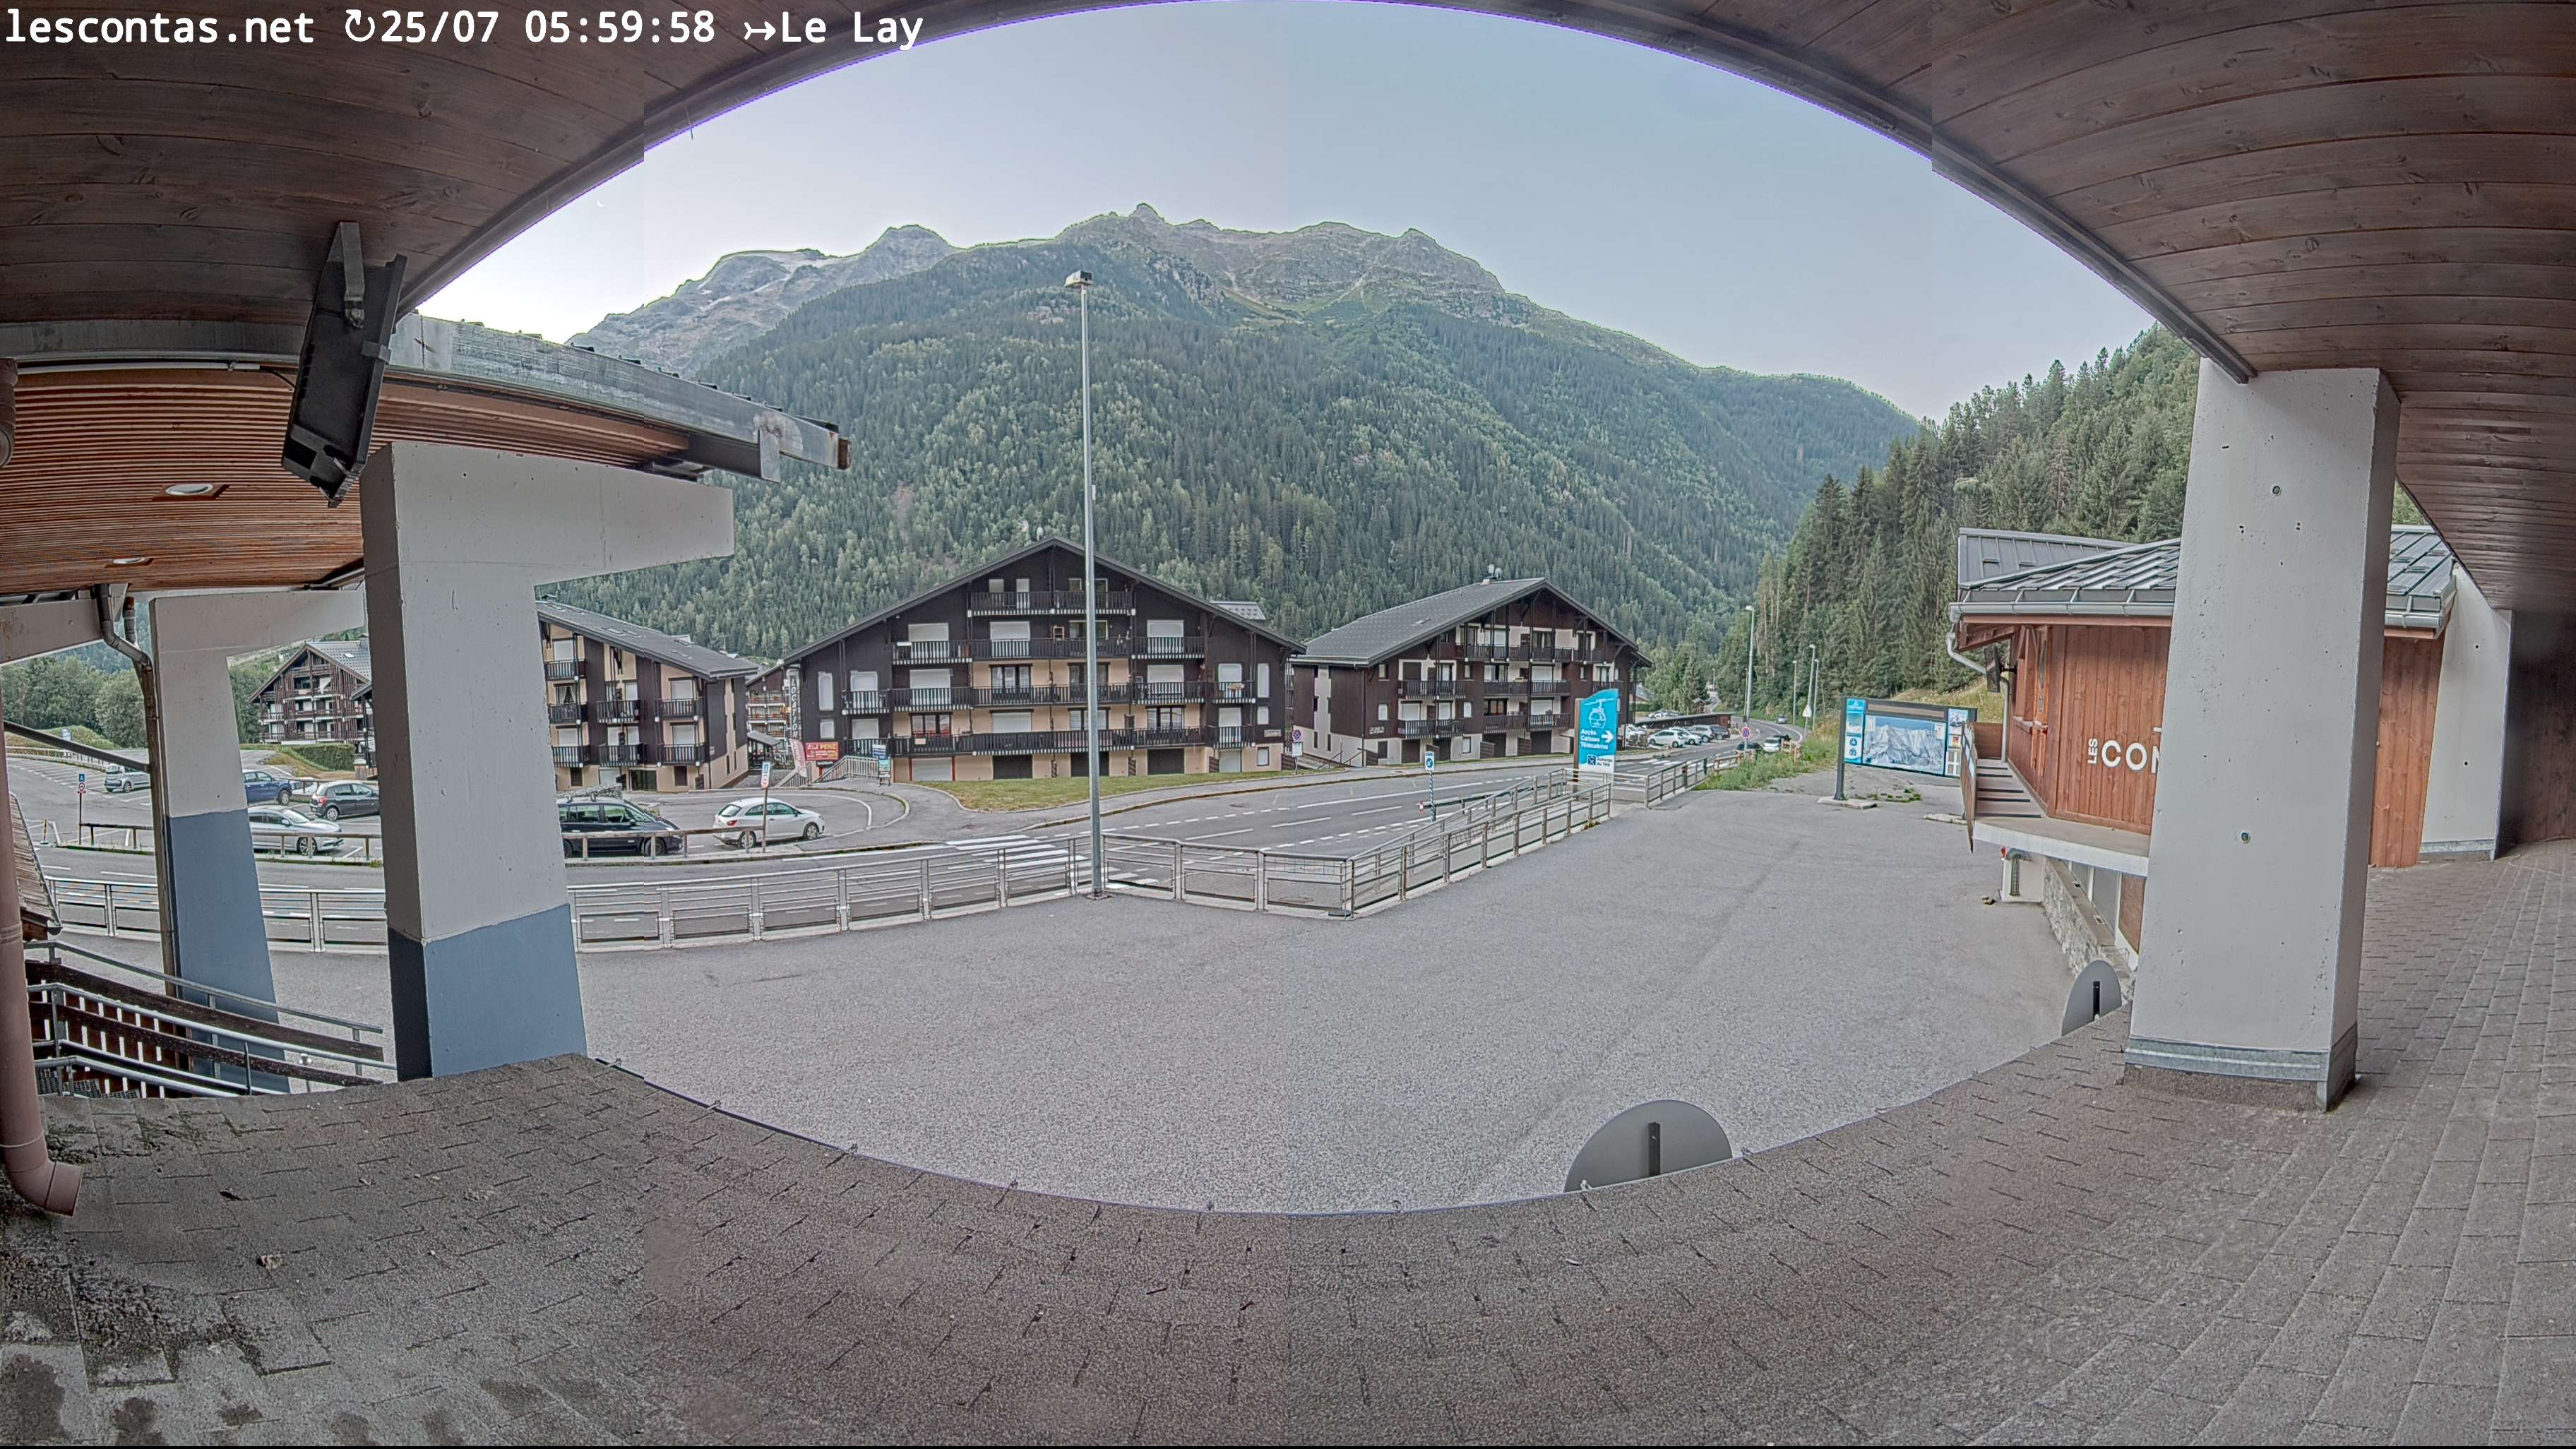 webcam Les Contamines - Montjoie